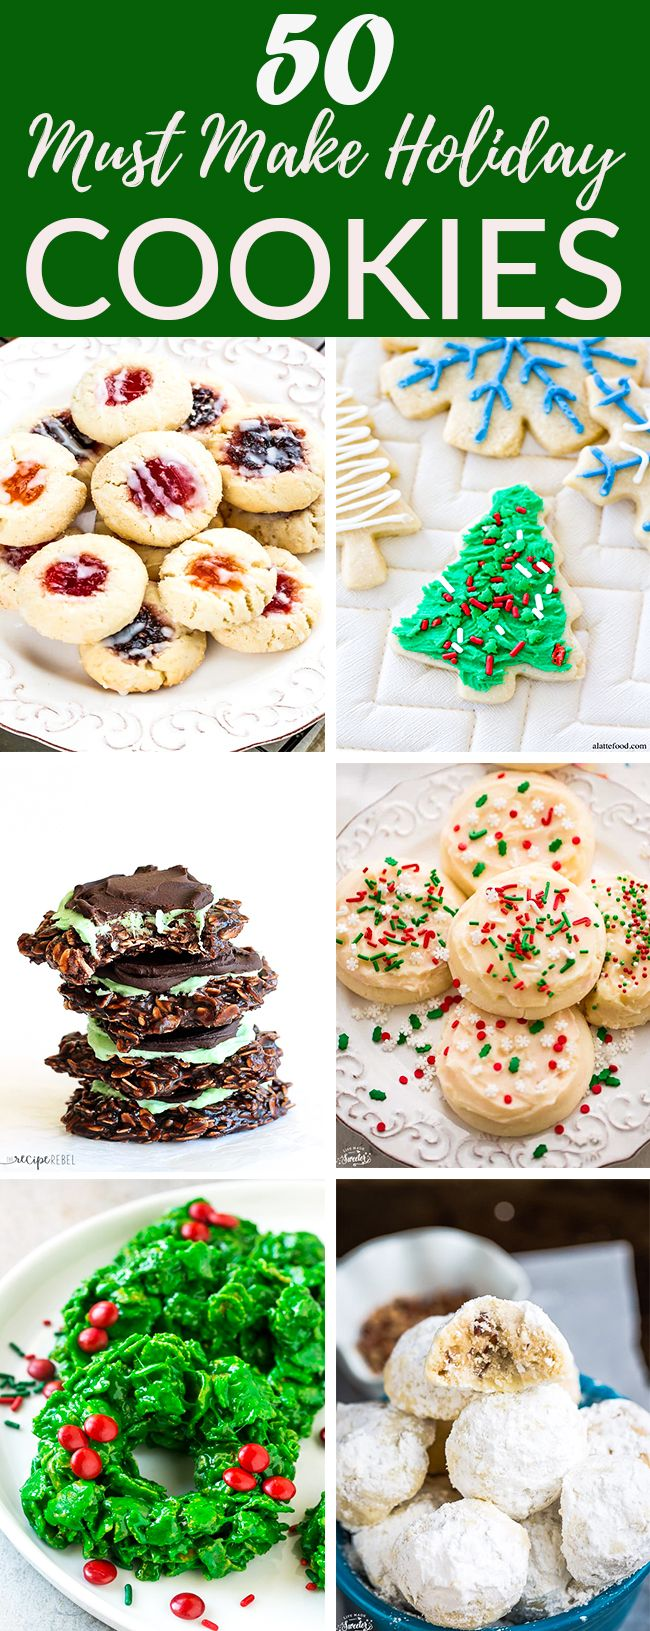 These are 50 of the most requested holiday cookies for any Christmas or holiday cookie platter. Make these cookies and wow your family and friends with sweetness overload. Or grab some platters and hand out to loved ones and neighbors as a happy holidays gift. Includes shortbread, sugar, wreath, gingerbread, snowball, candy cane, snowflake, thumbprints and more! #cookies #holidaycookies #christmas #baking